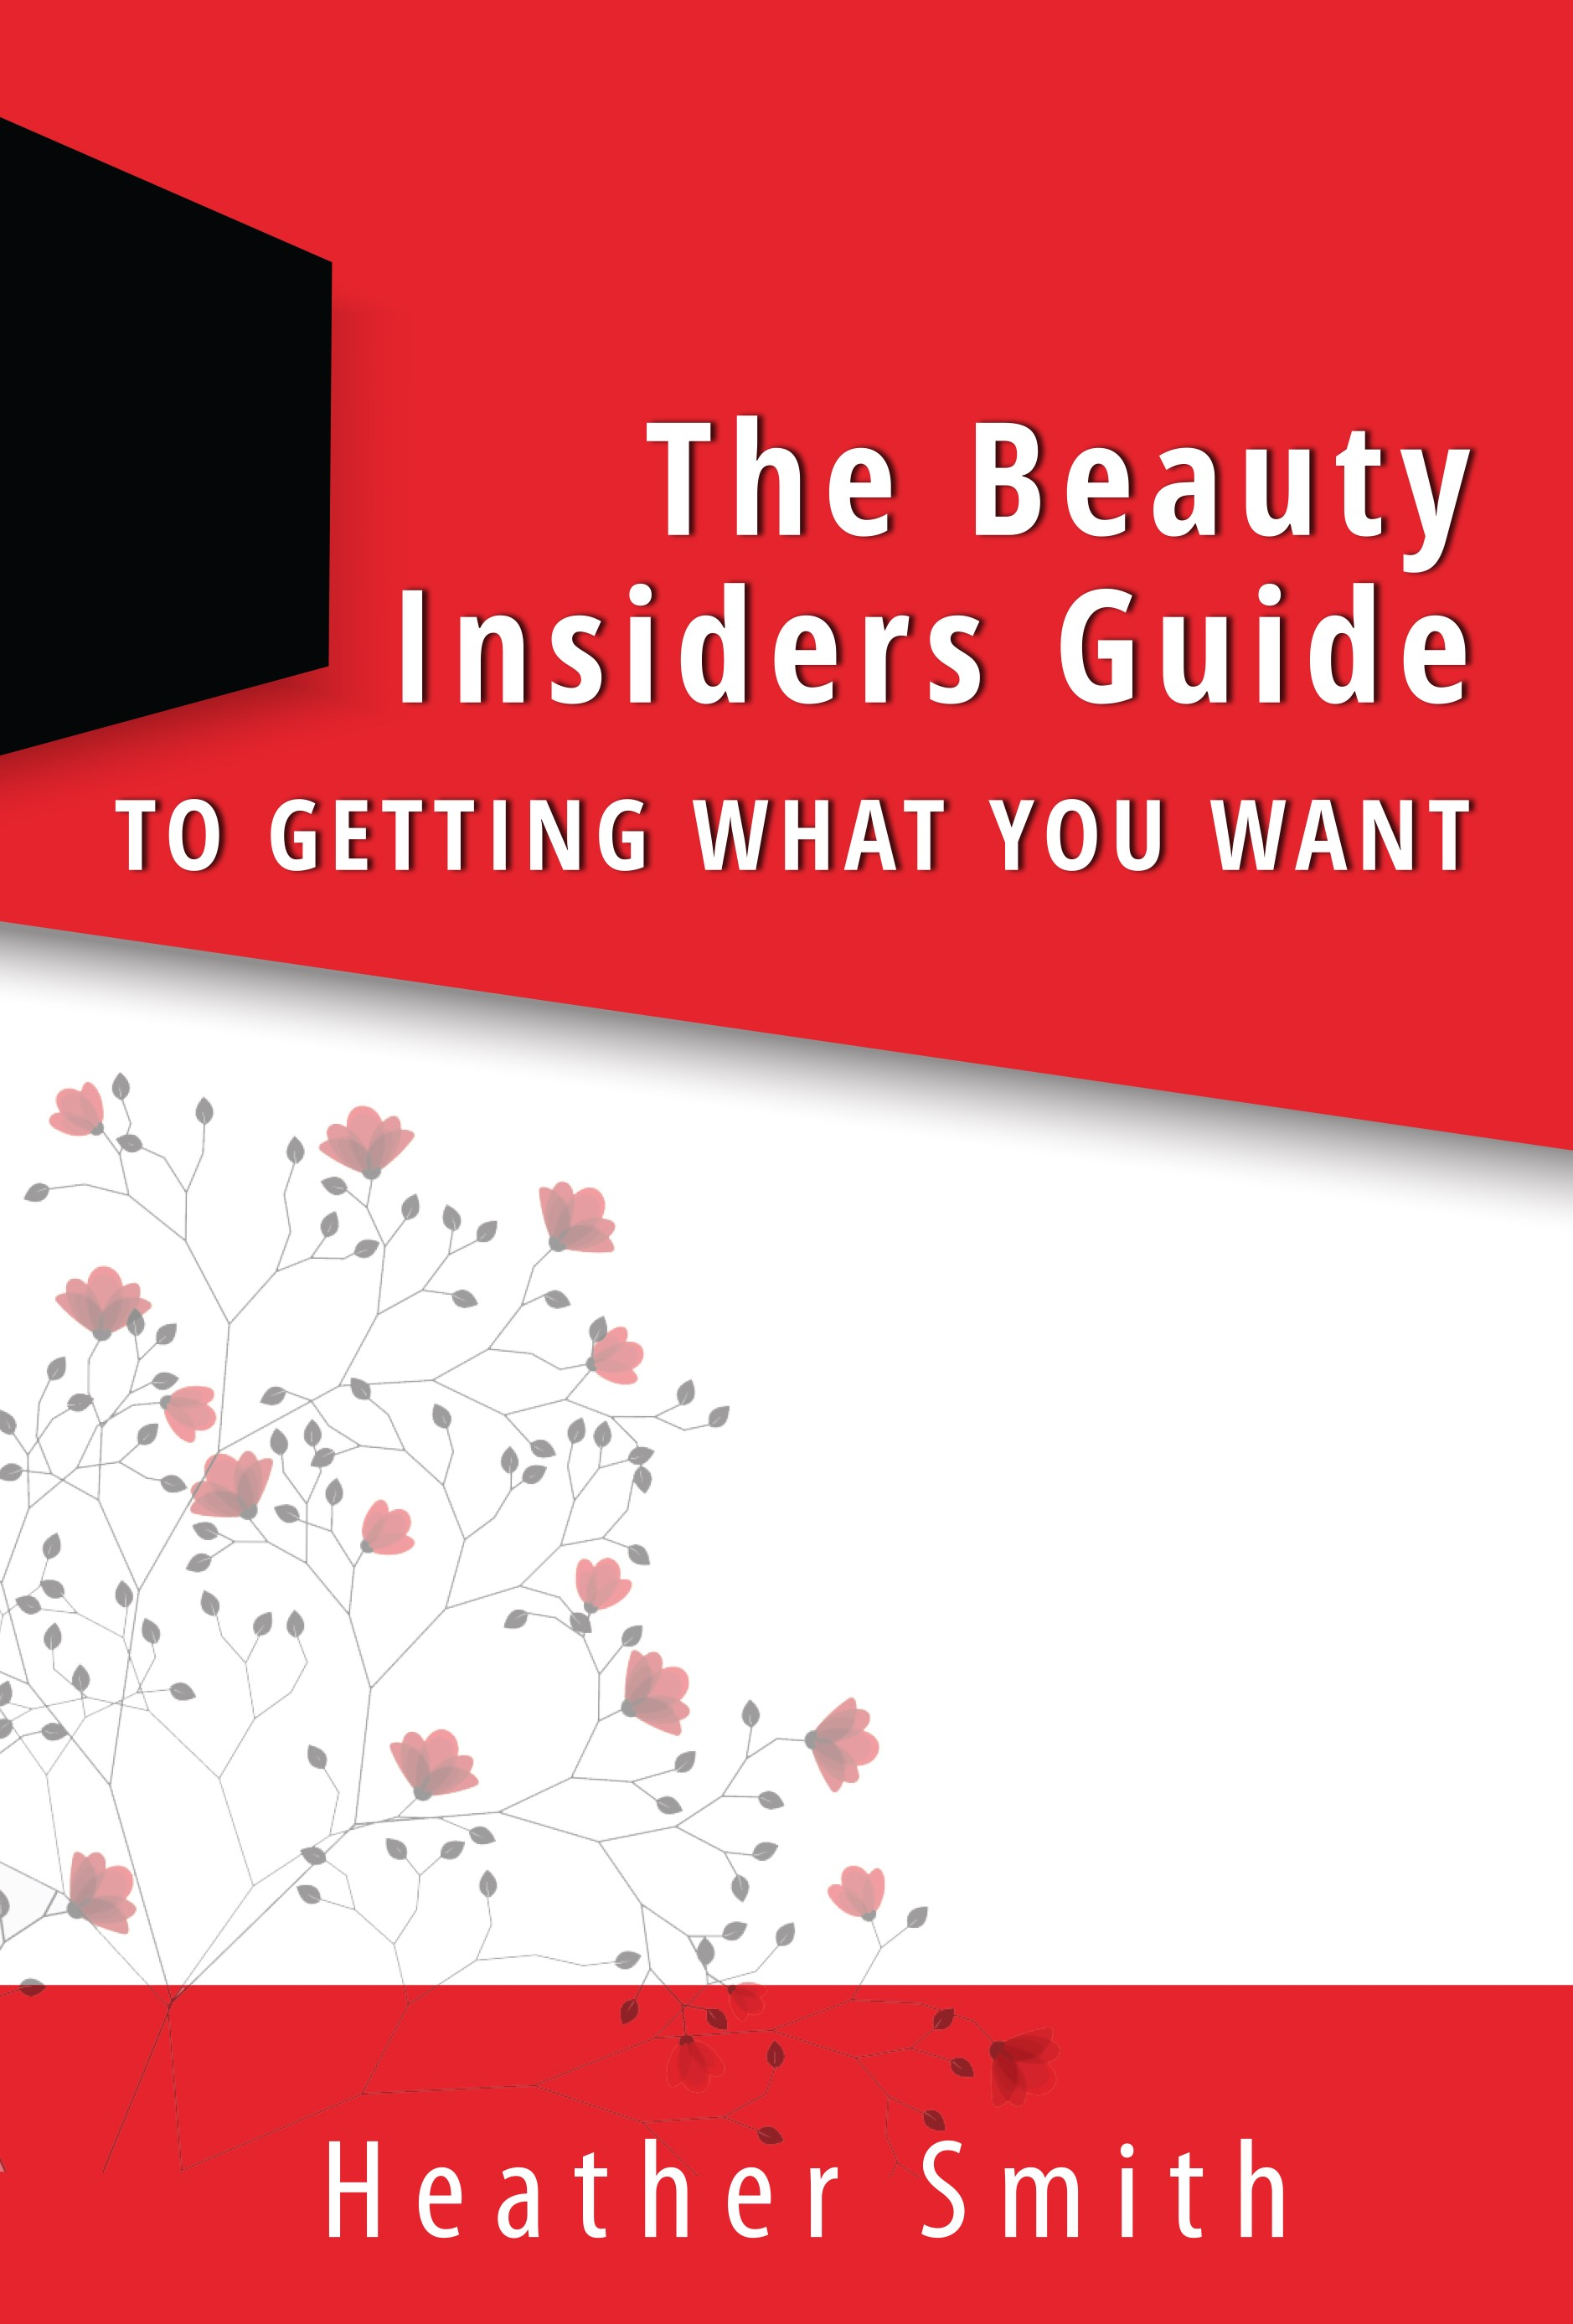 The Beauty Insiders Guide